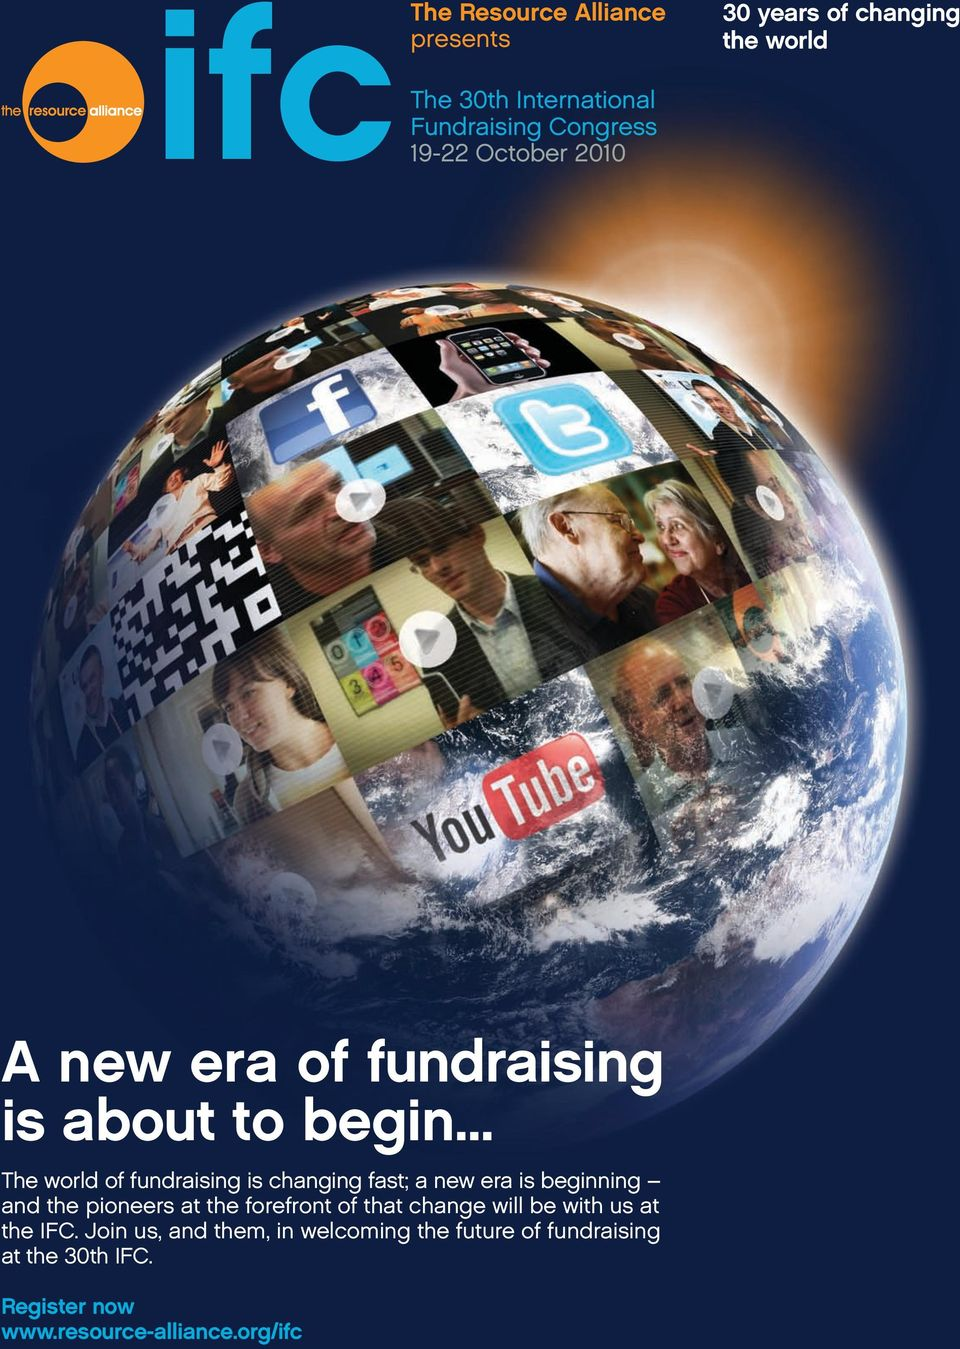 .. The world of fundraising is changing fast; a new era is beginning and the pioneers at the forefront of that